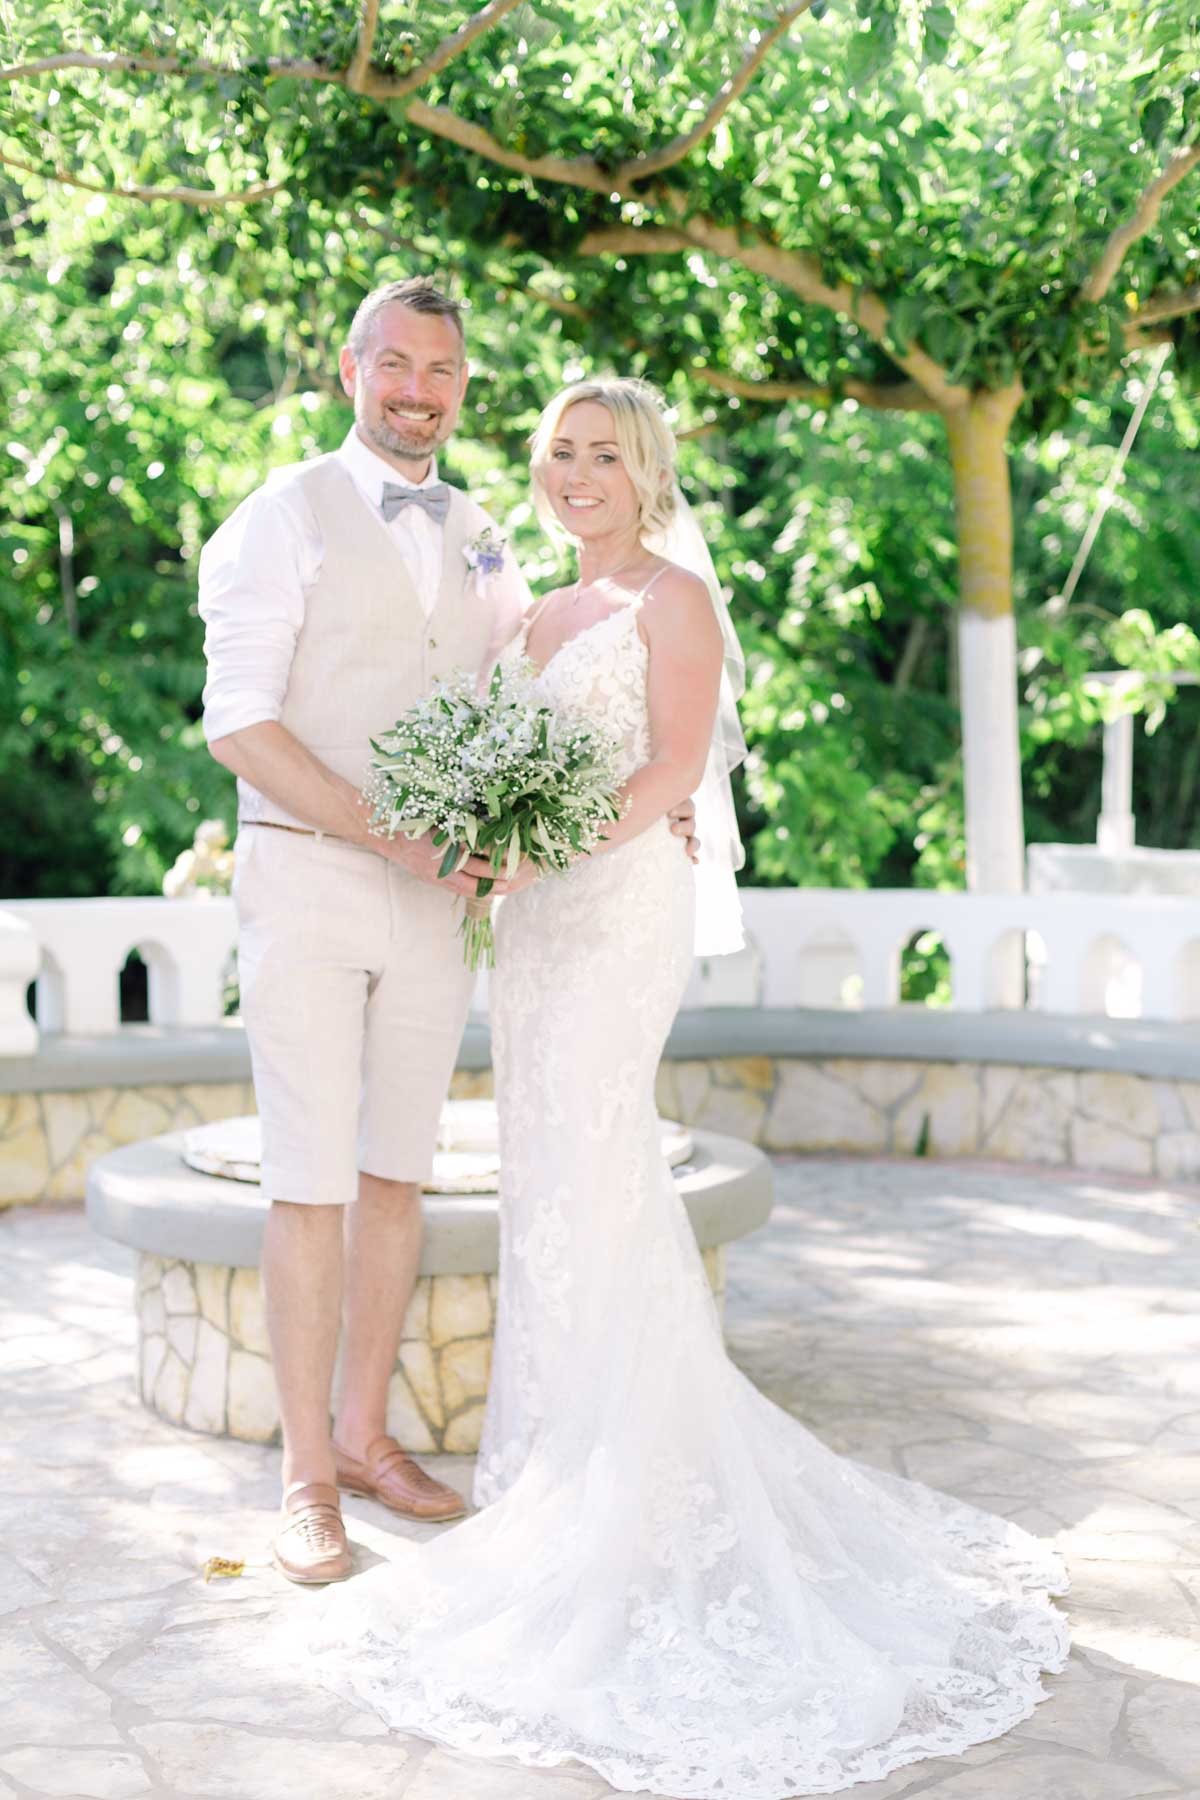 Wedding Celebration of Louise and Gavin by Vicky and Nikiforos Photography Studio